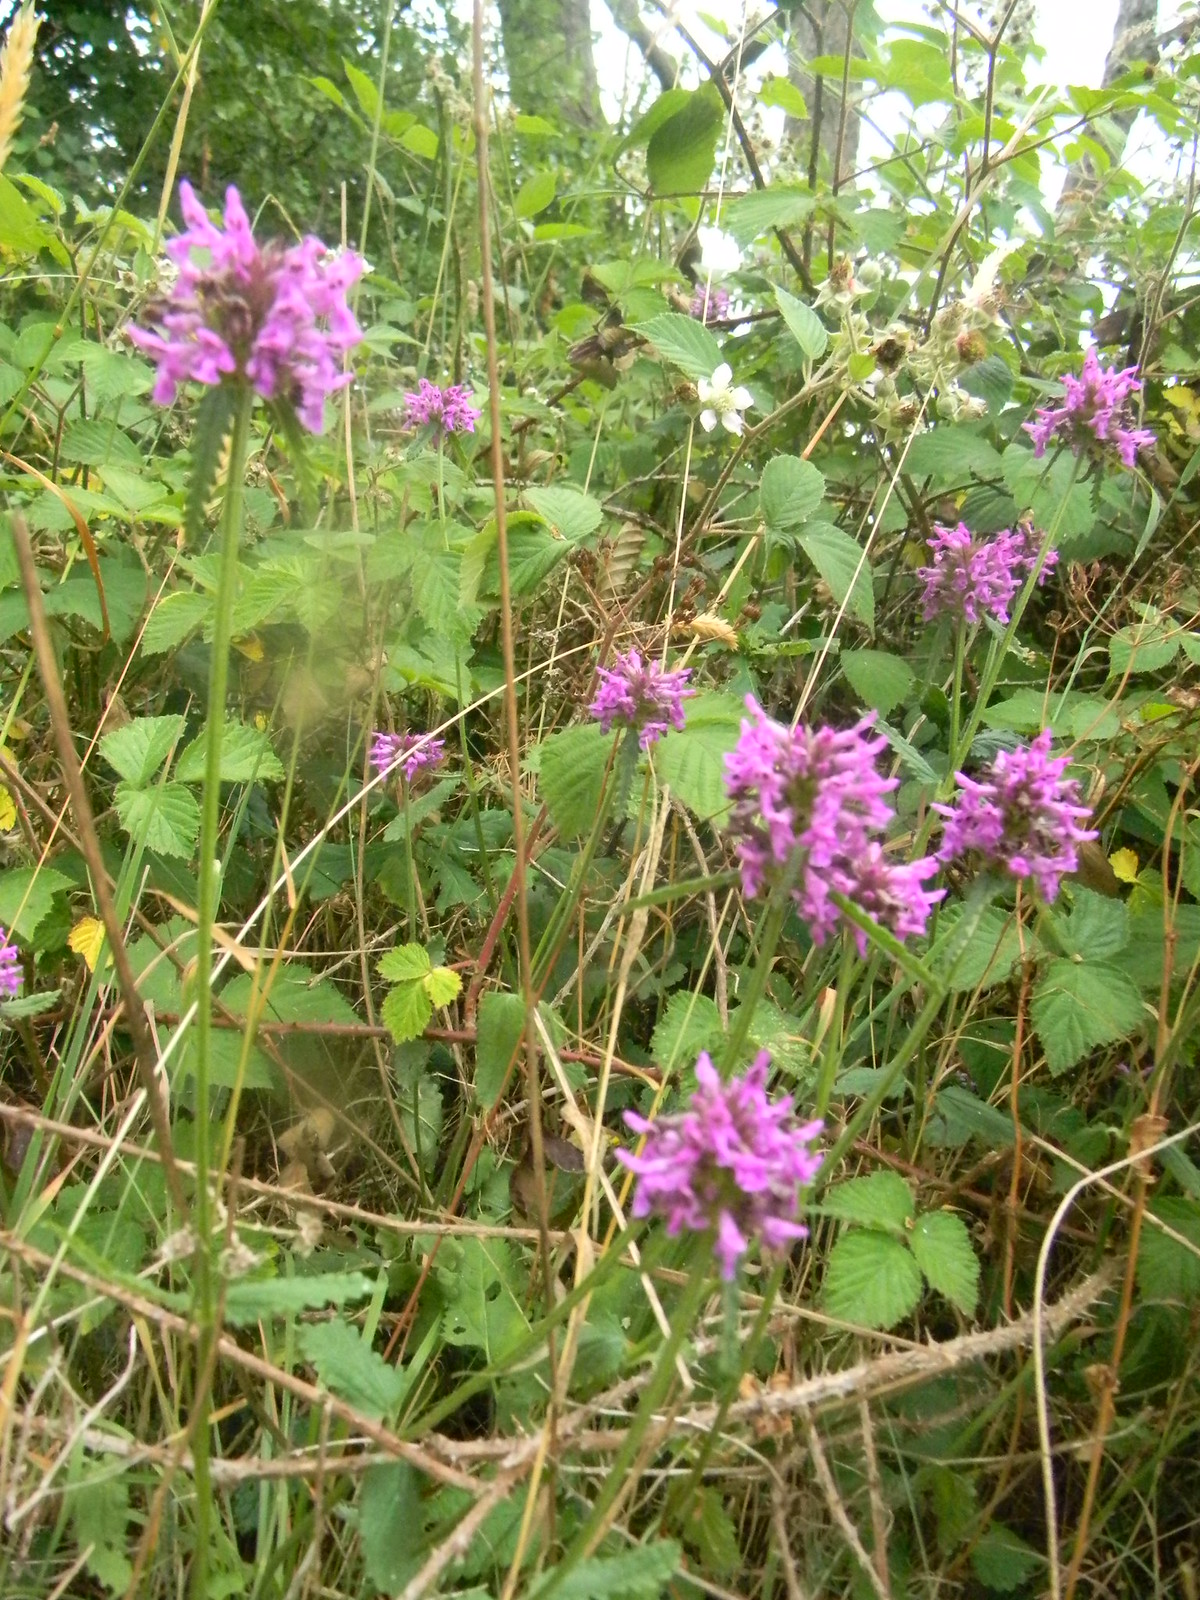 Mystery plant Mortimer to Aldermaston self-heal maybe?